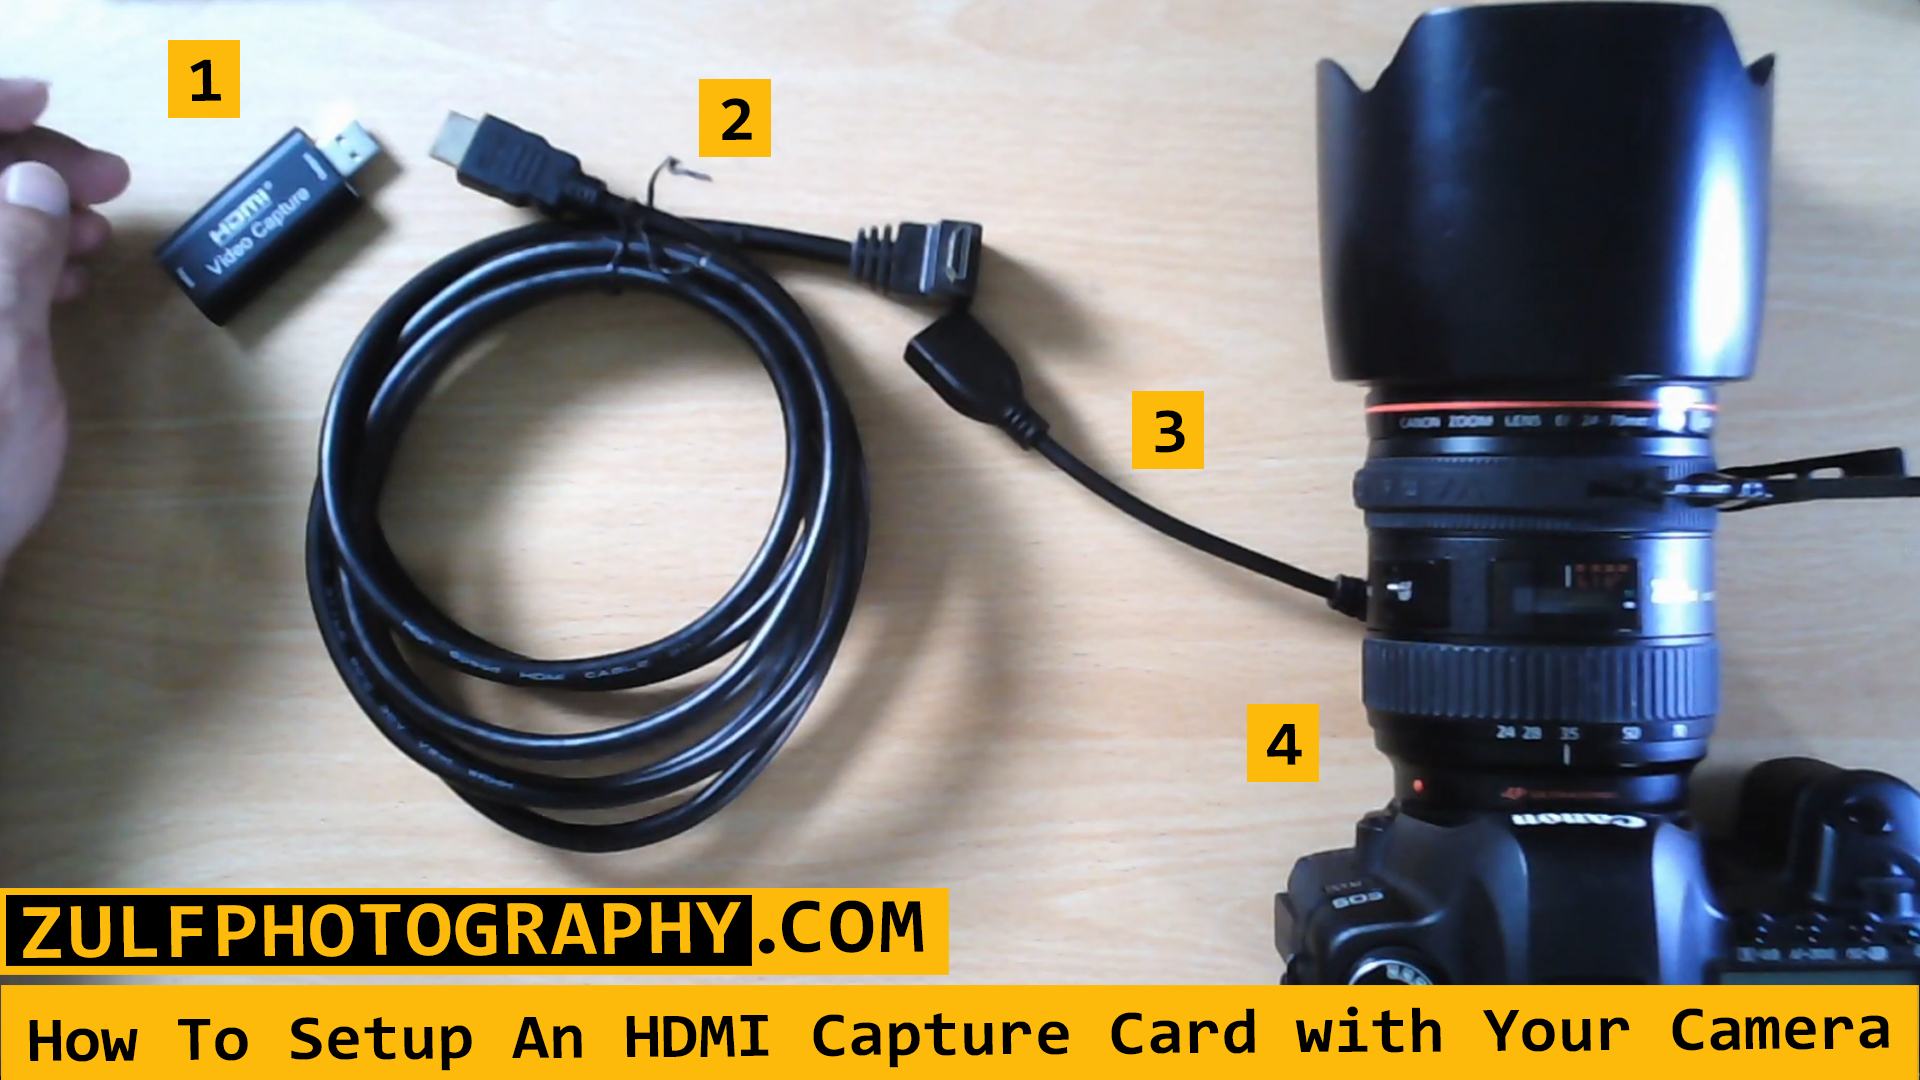 HDMI Setup for camera